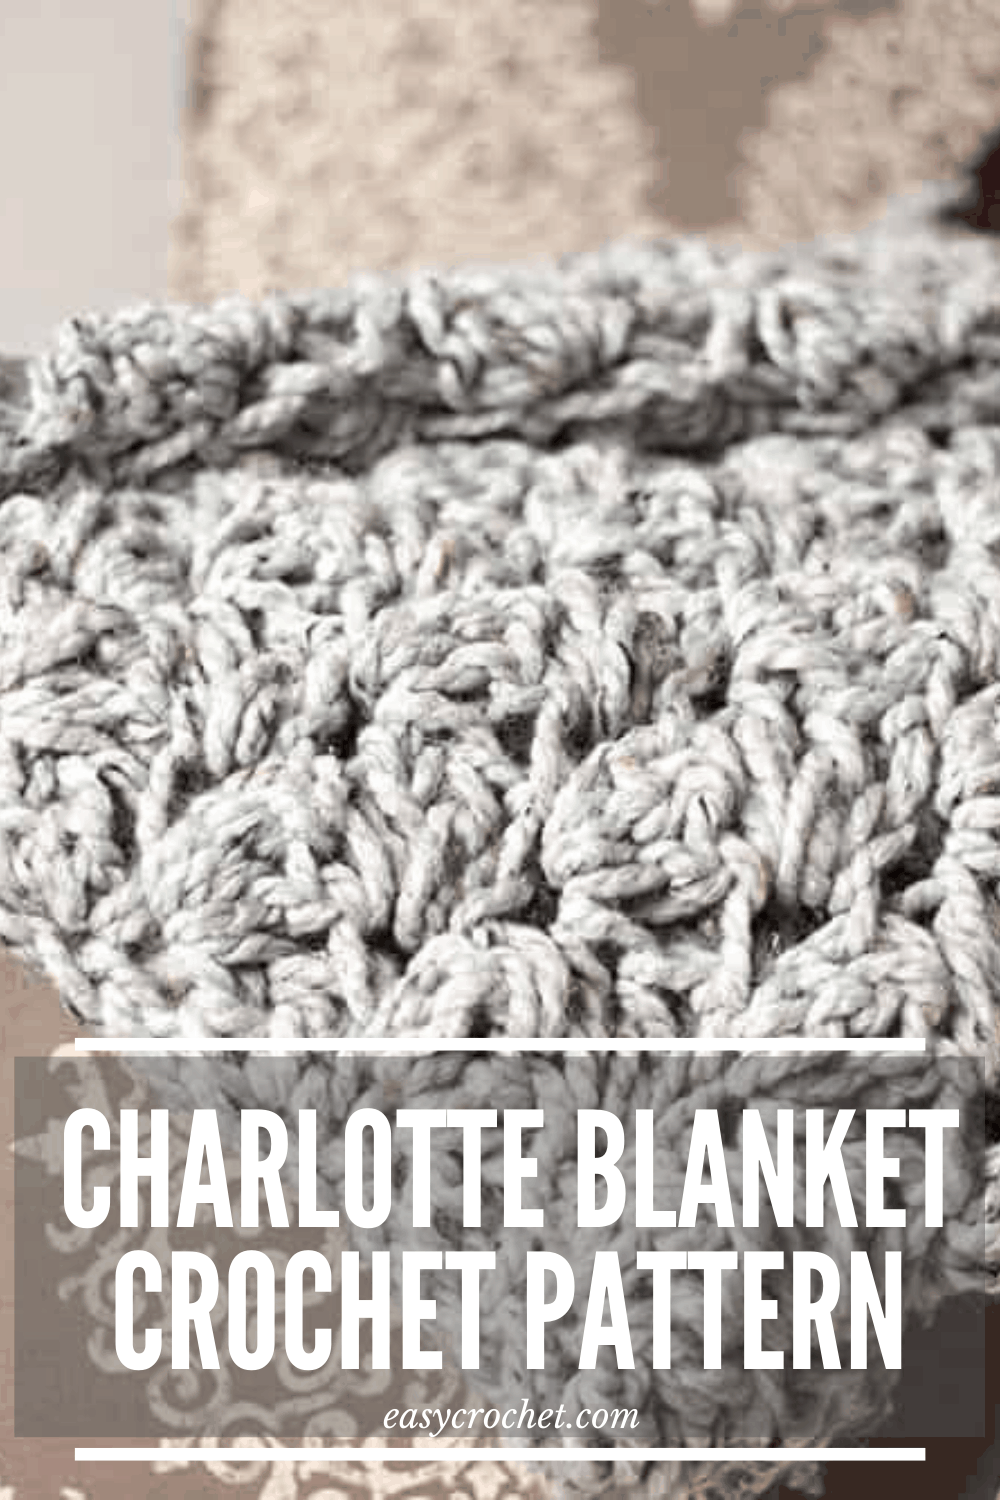 Free Crochet Blanket Pattern - The Charlotte - Beginner-Friendly and works up fast! Find the free crochet pattern at easycrochet.com via @easycrochetcom